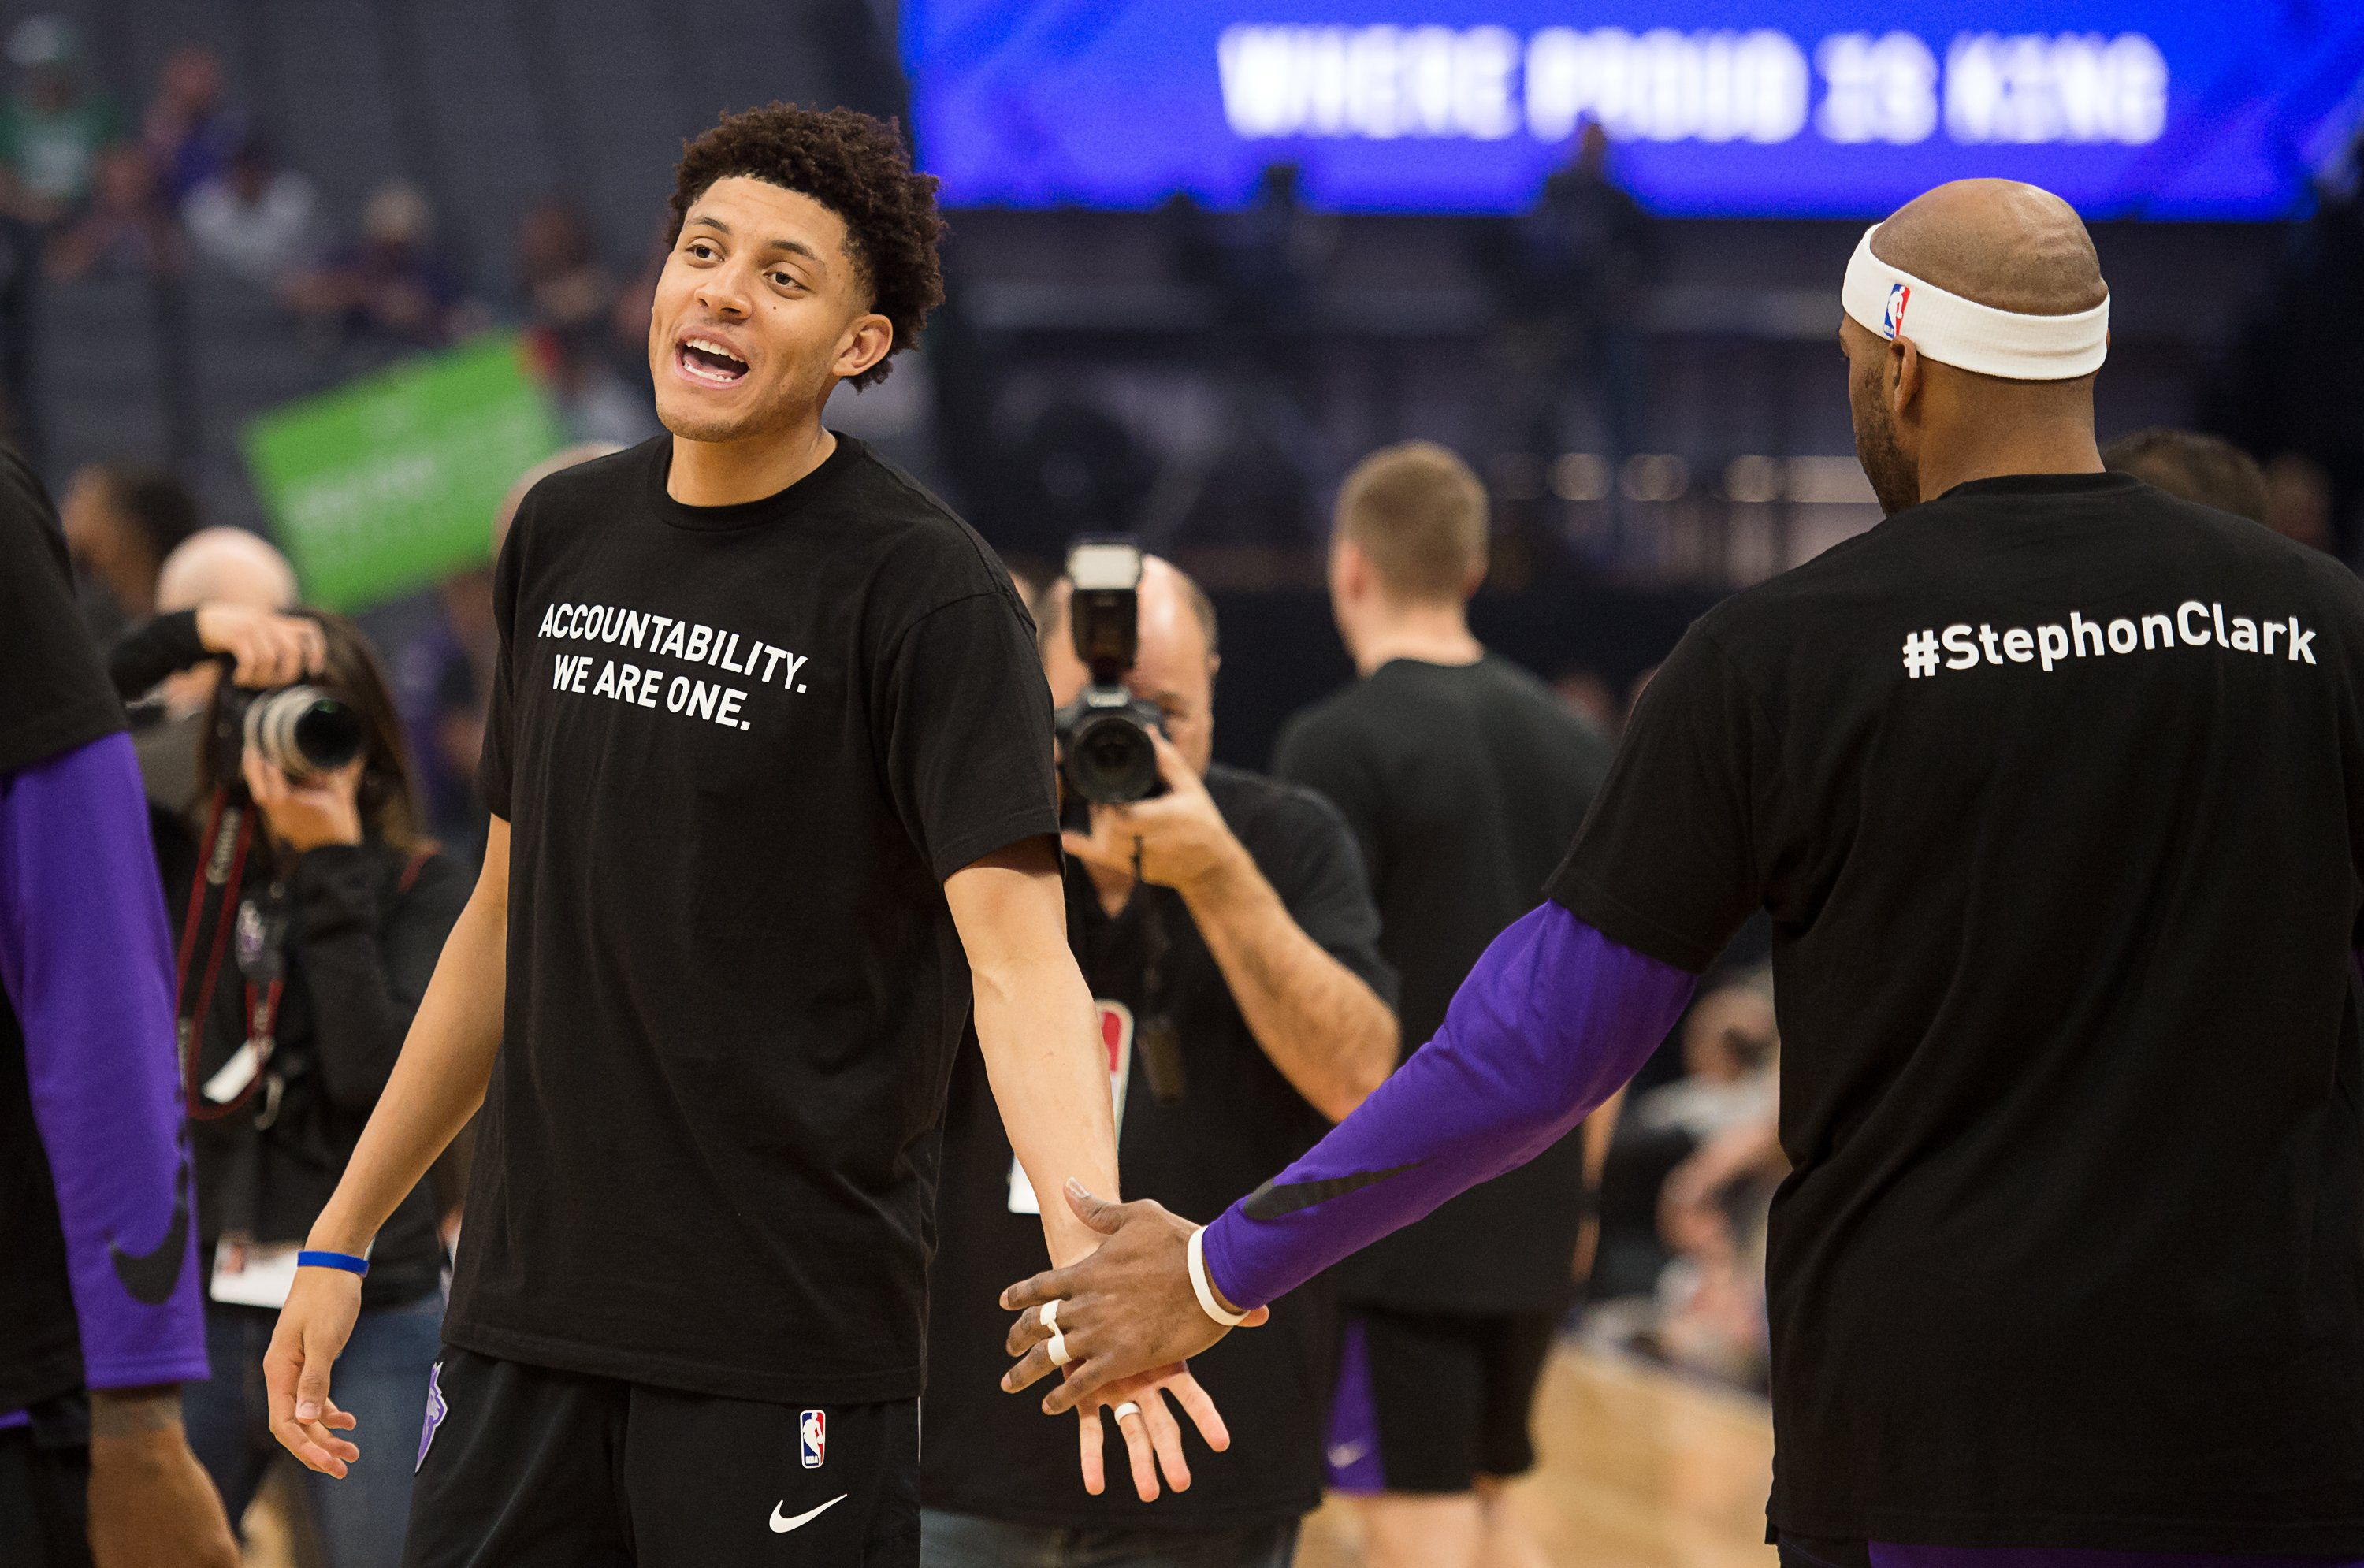 The Sacramento Kings' Justin Jackson and Vince Carter wear their Stephon Clark shirts during warmups.